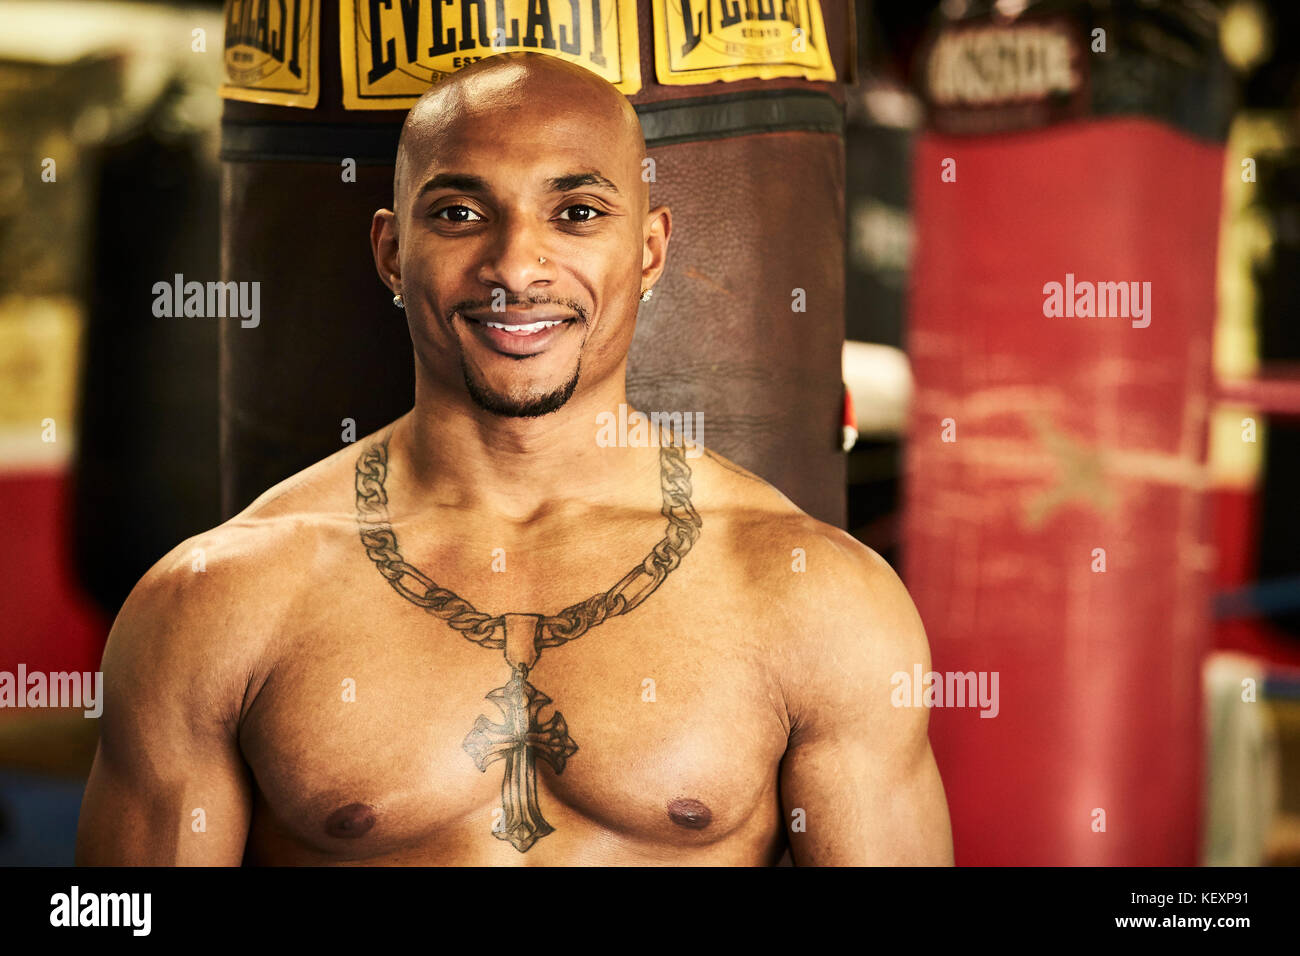 Portrait of boxer standing against punching bag and smiling, Taunton, Massachusetts, USA - Stock Image